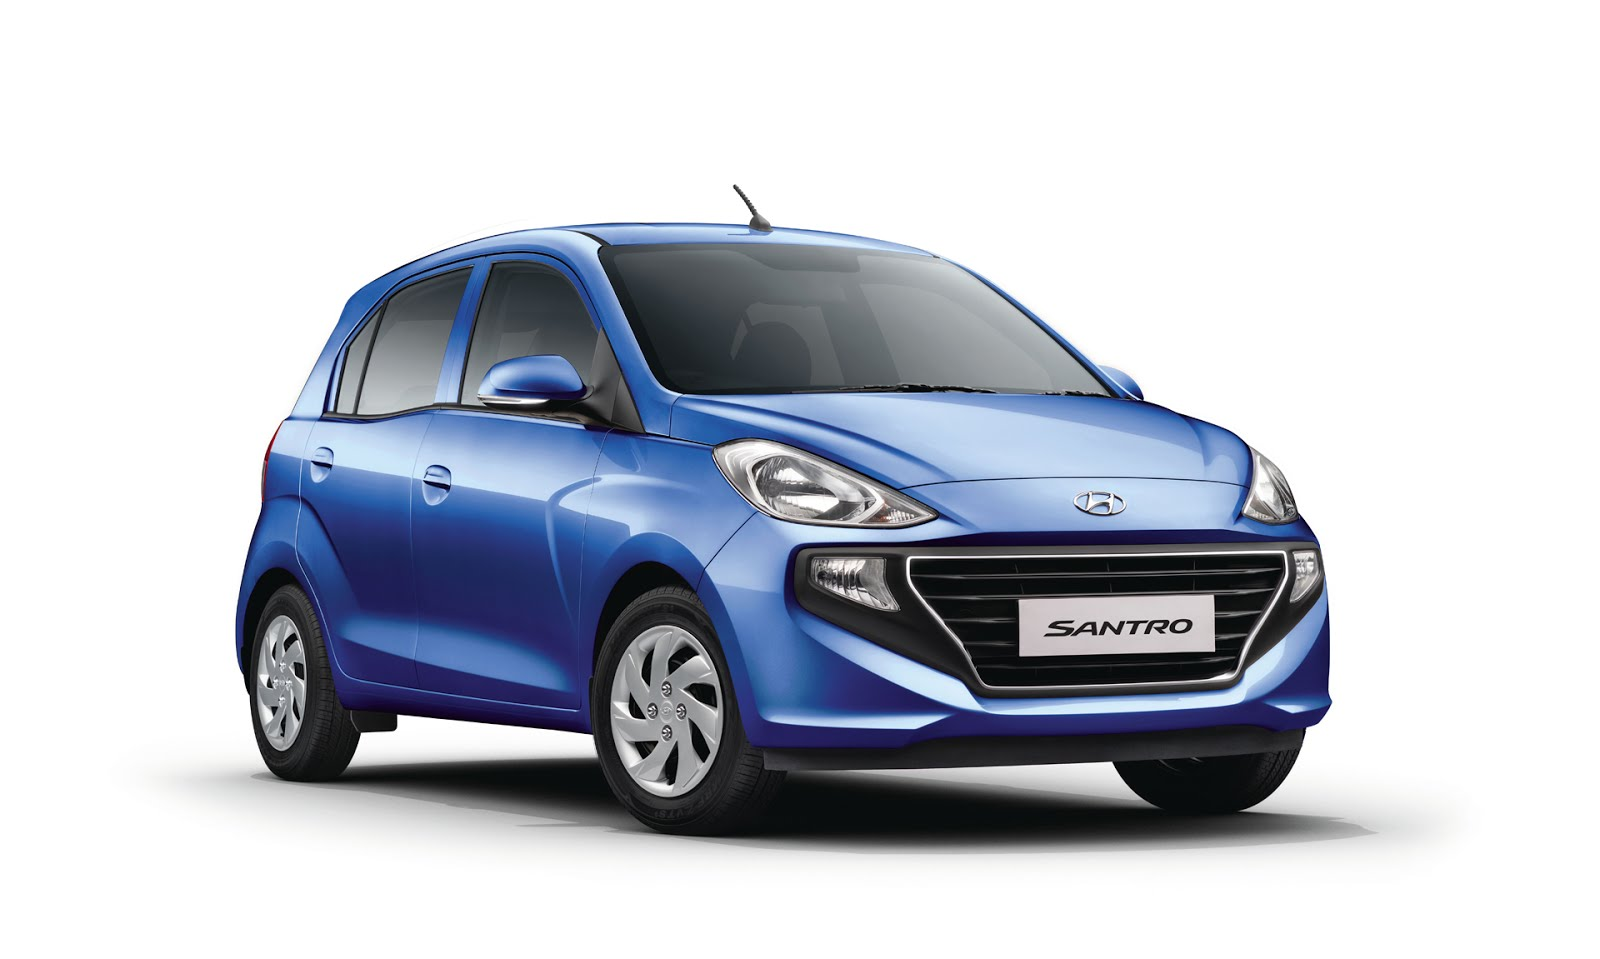 Will Hyundai Launch Santro In Pakistan? Whats Your Opinion